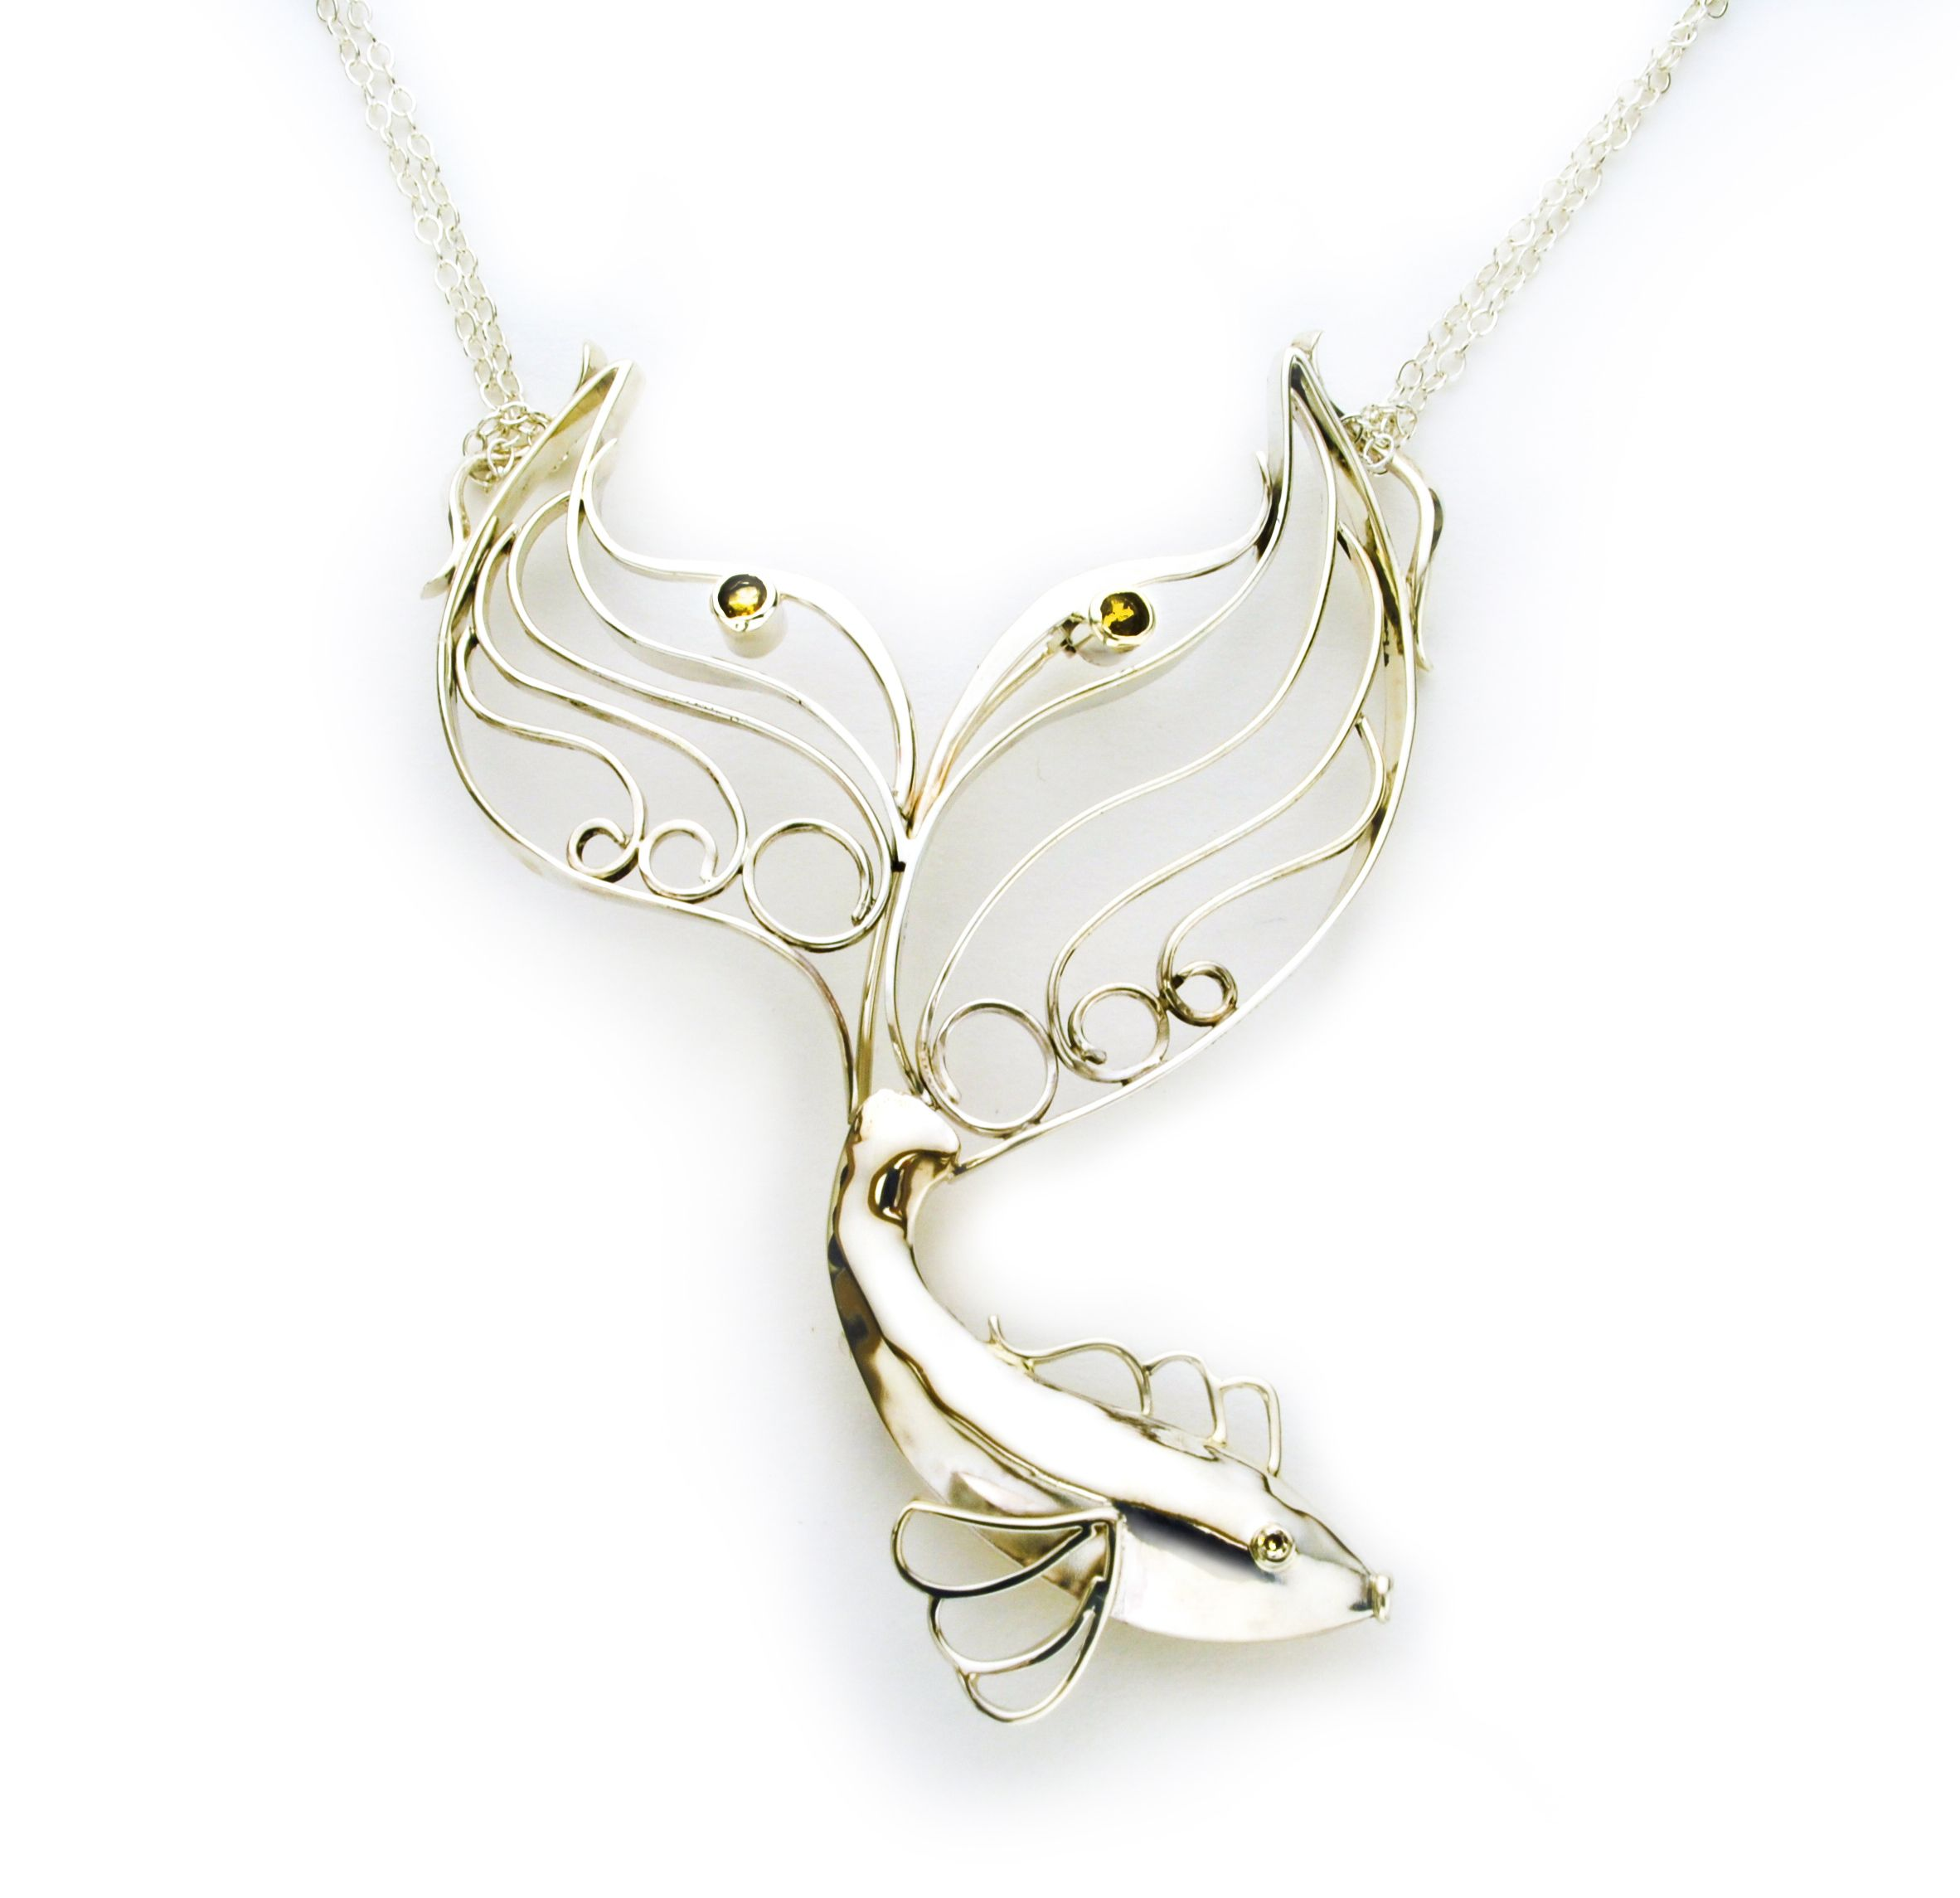 sterling pendant new classic mjj products made shop star silver designer zealand jewellery bridal fish